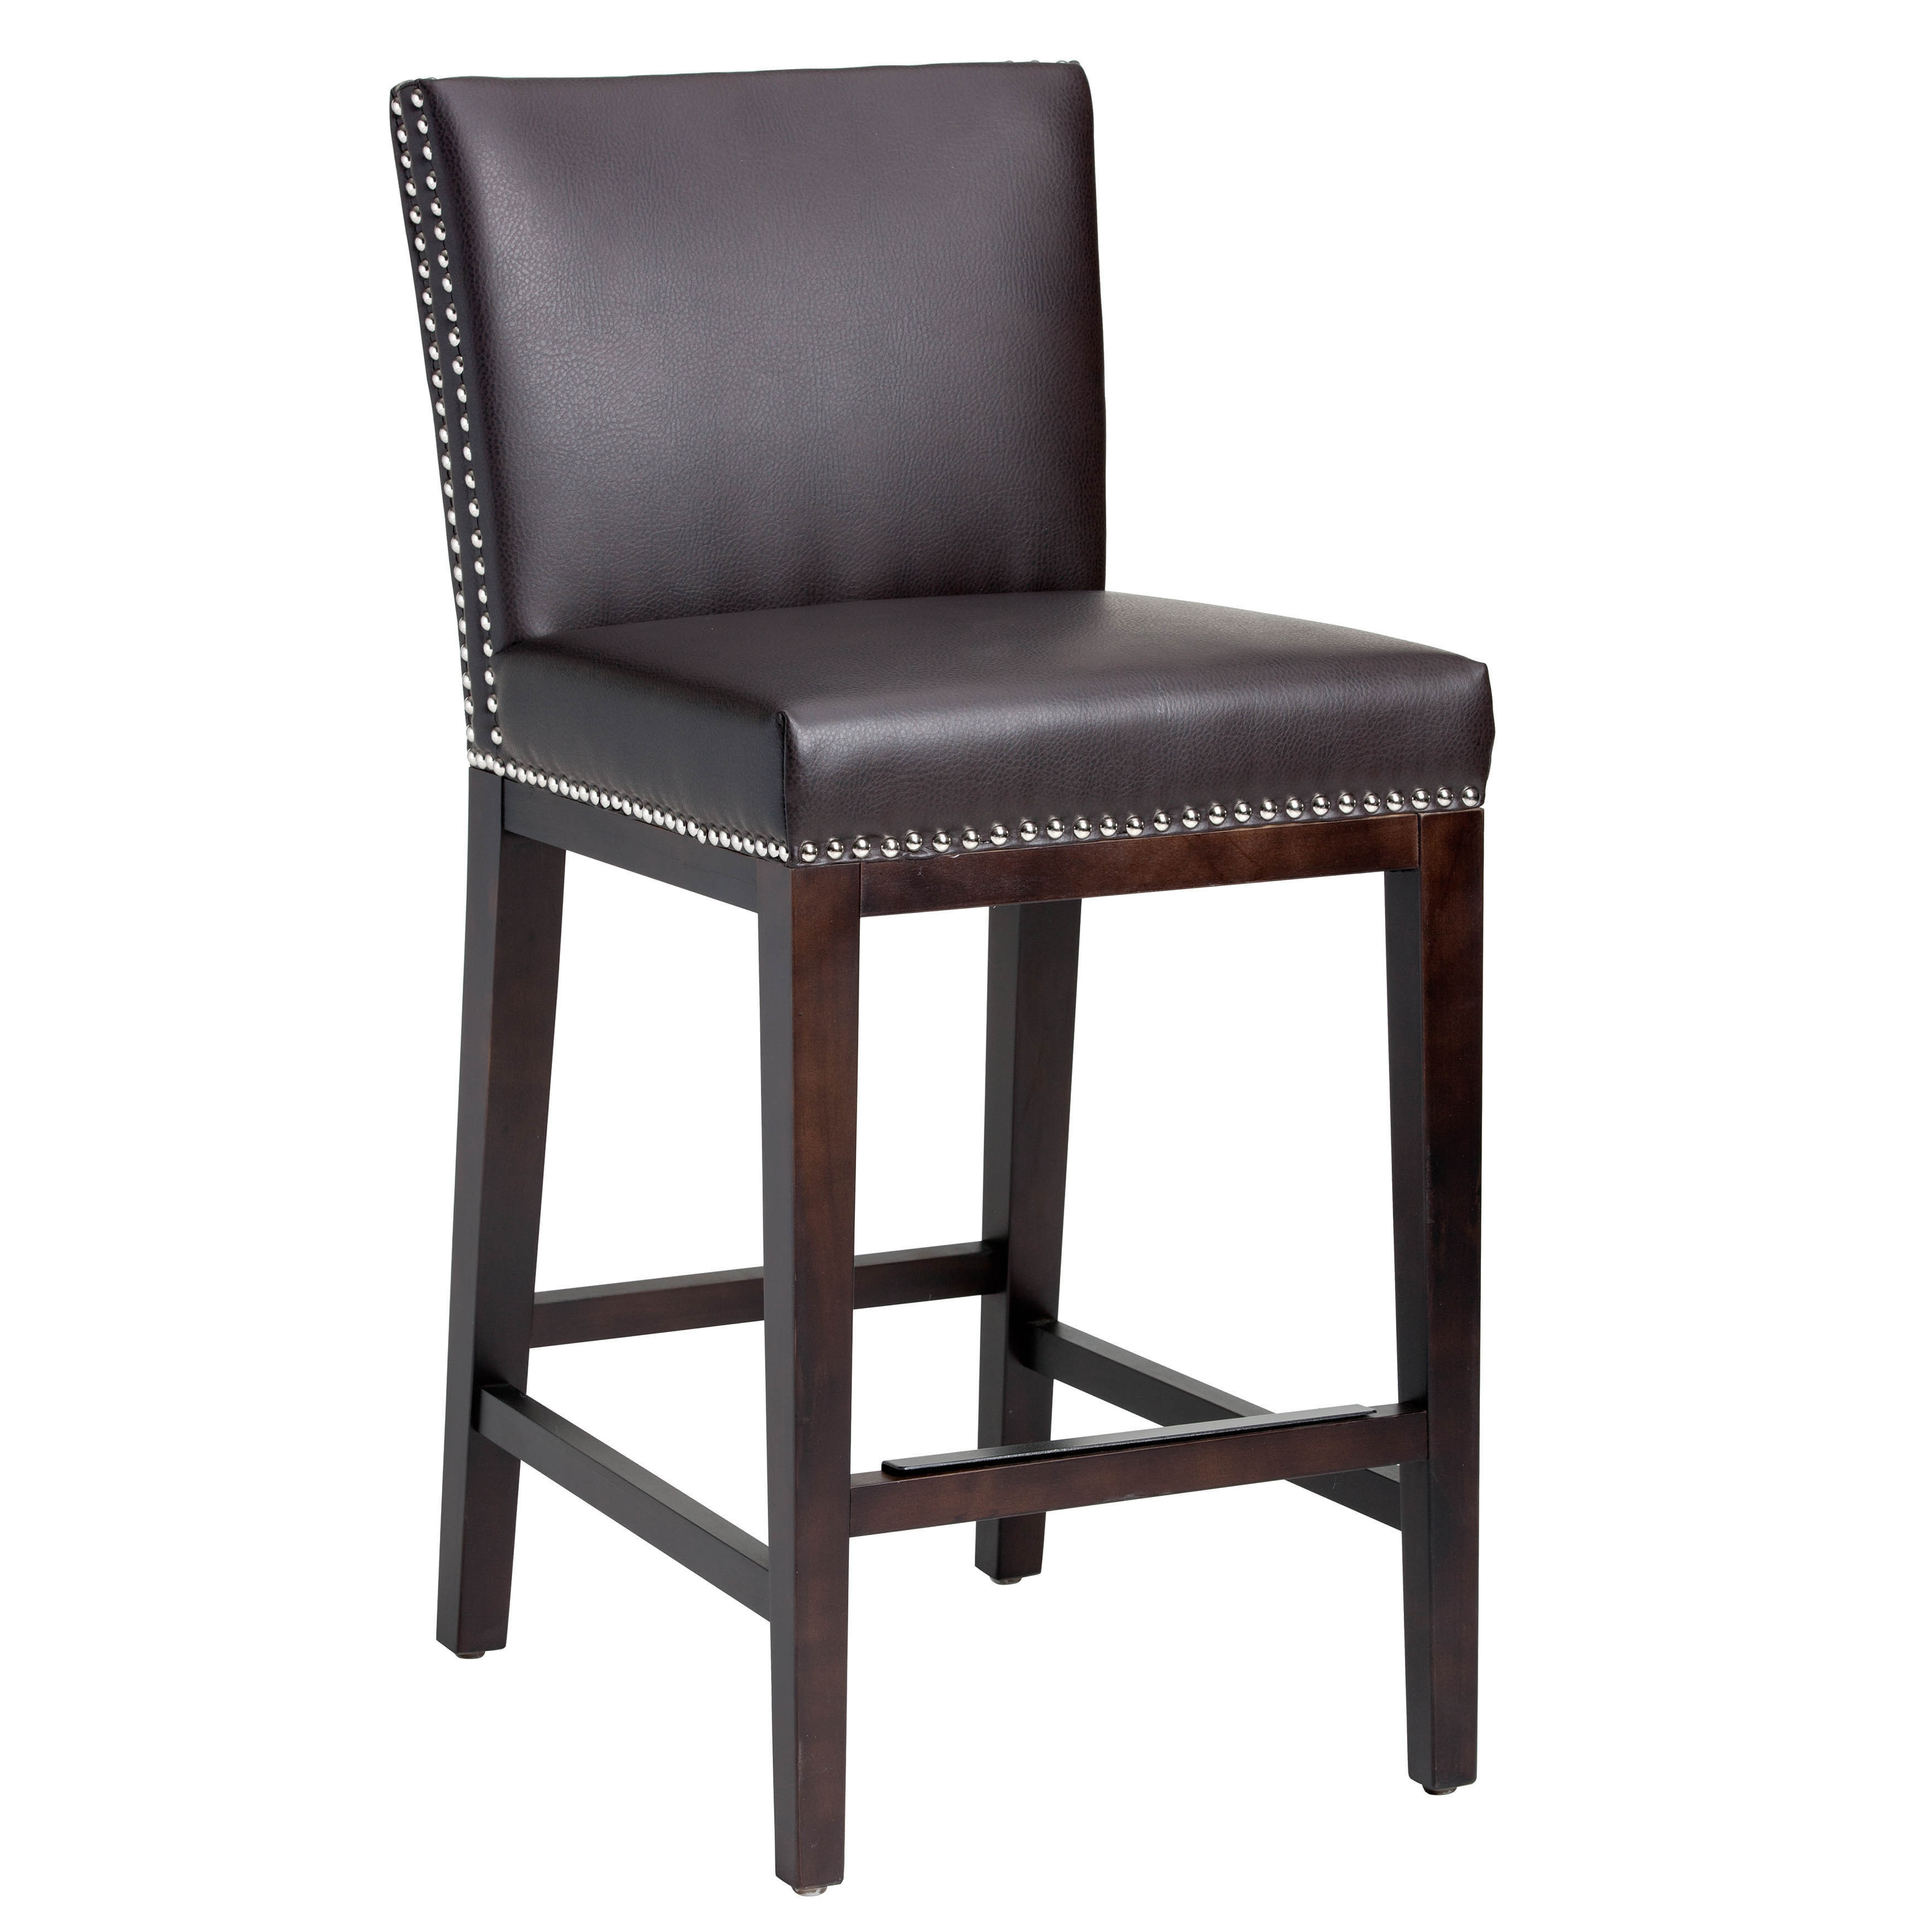 Oliver & James Grayson Bonded Leather 26-inch Counter Stool